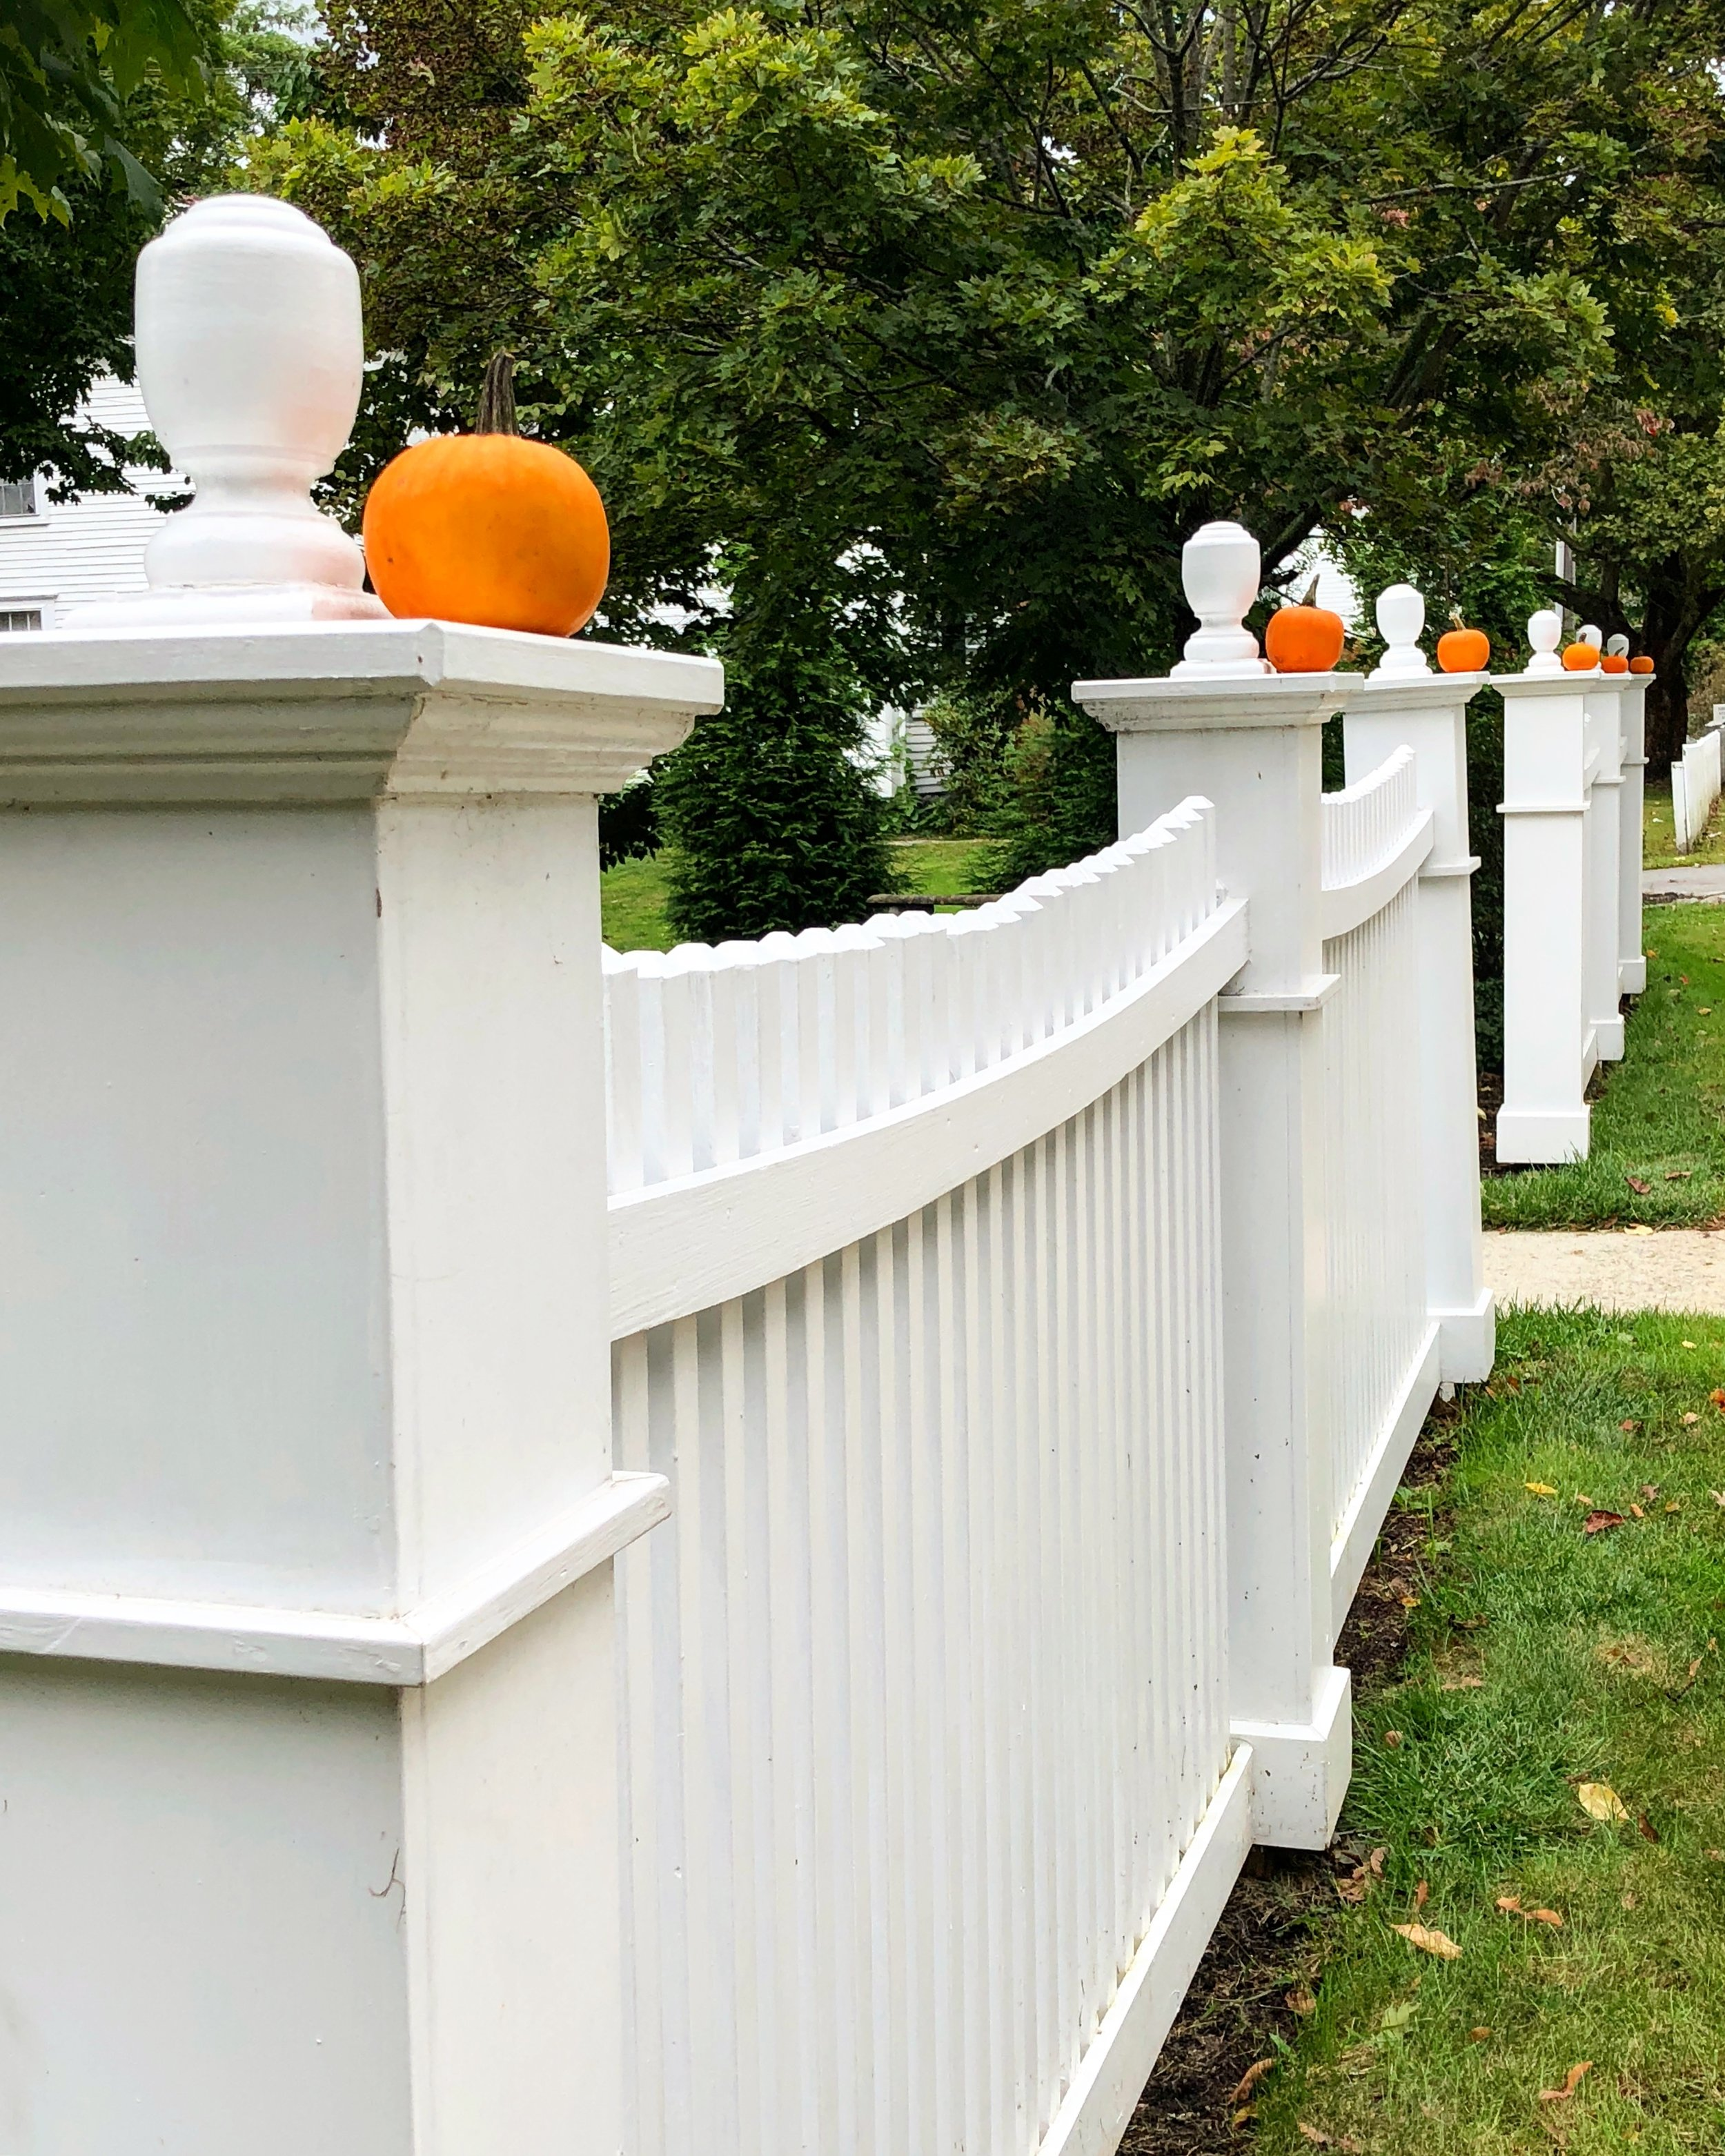 mini pumpkins on a white New England Fence